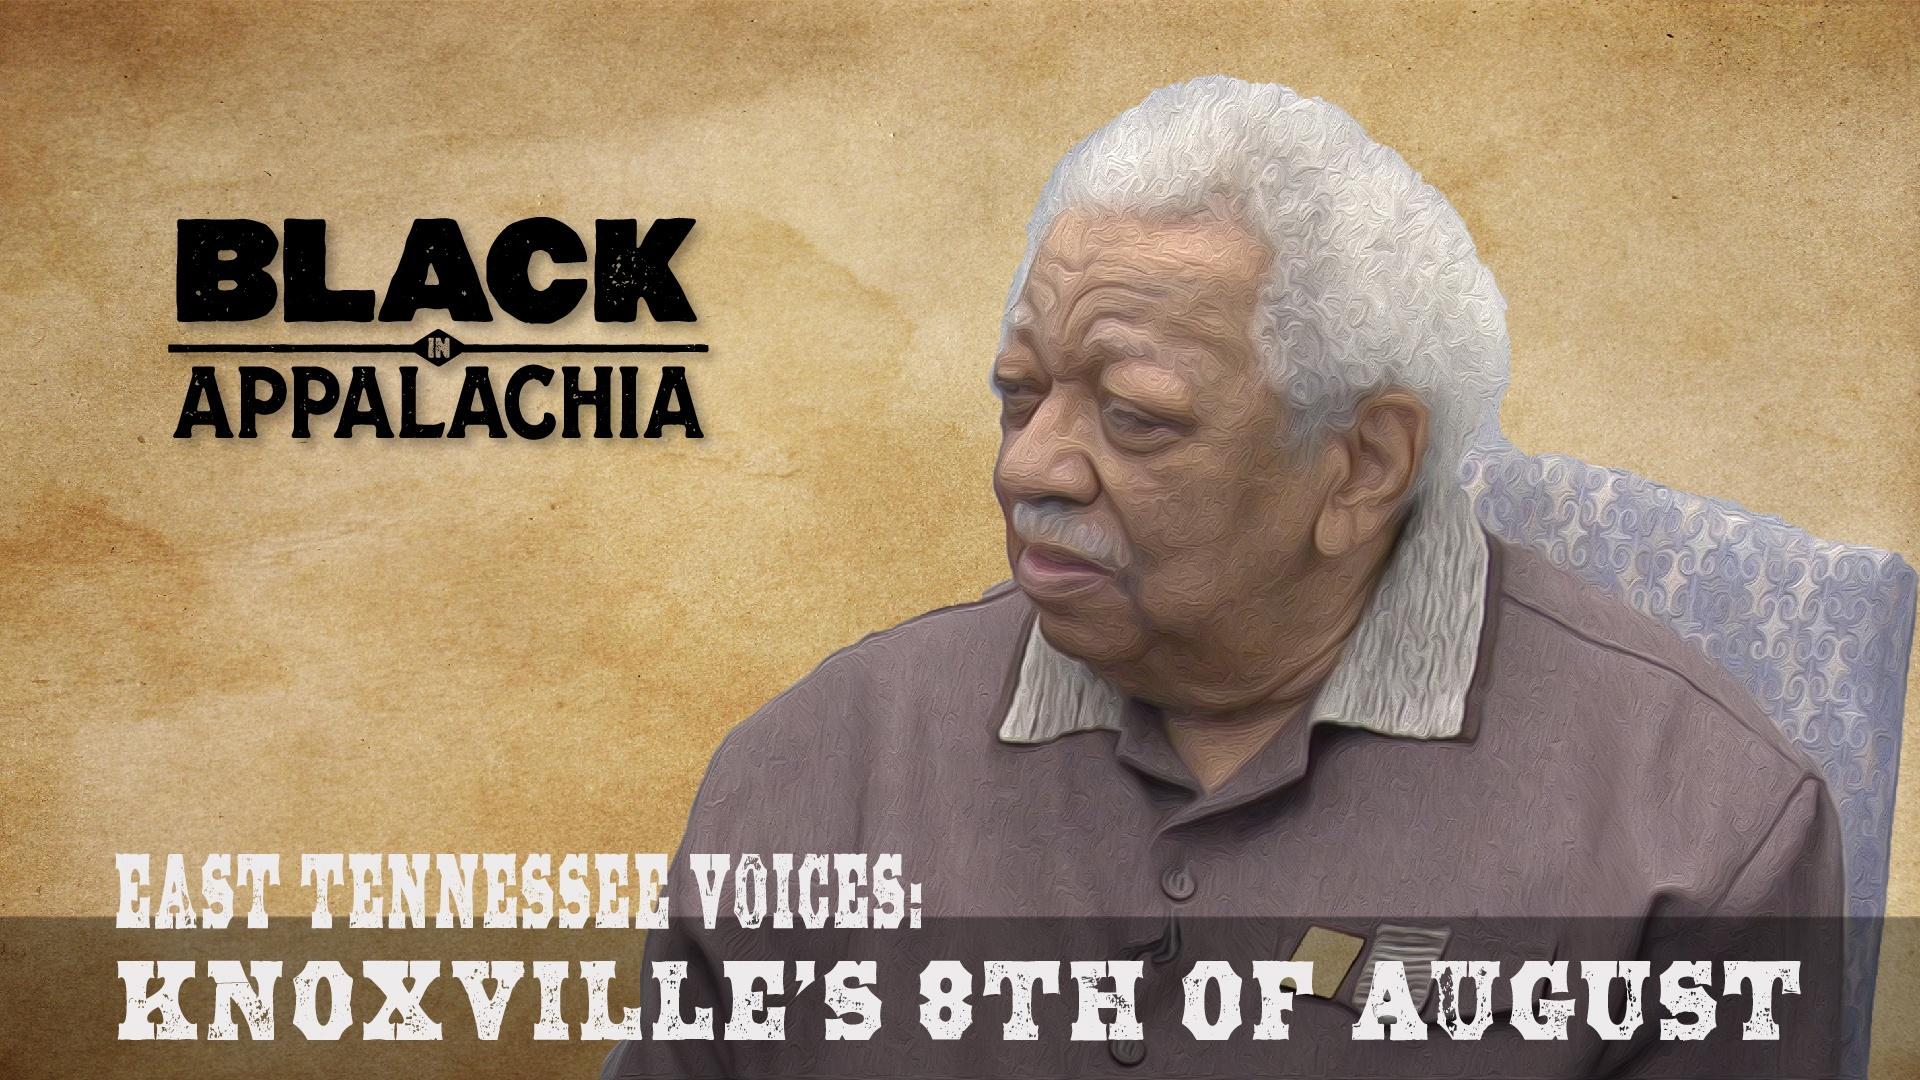 East Tennessee Voices | Knoxville's 8th of August